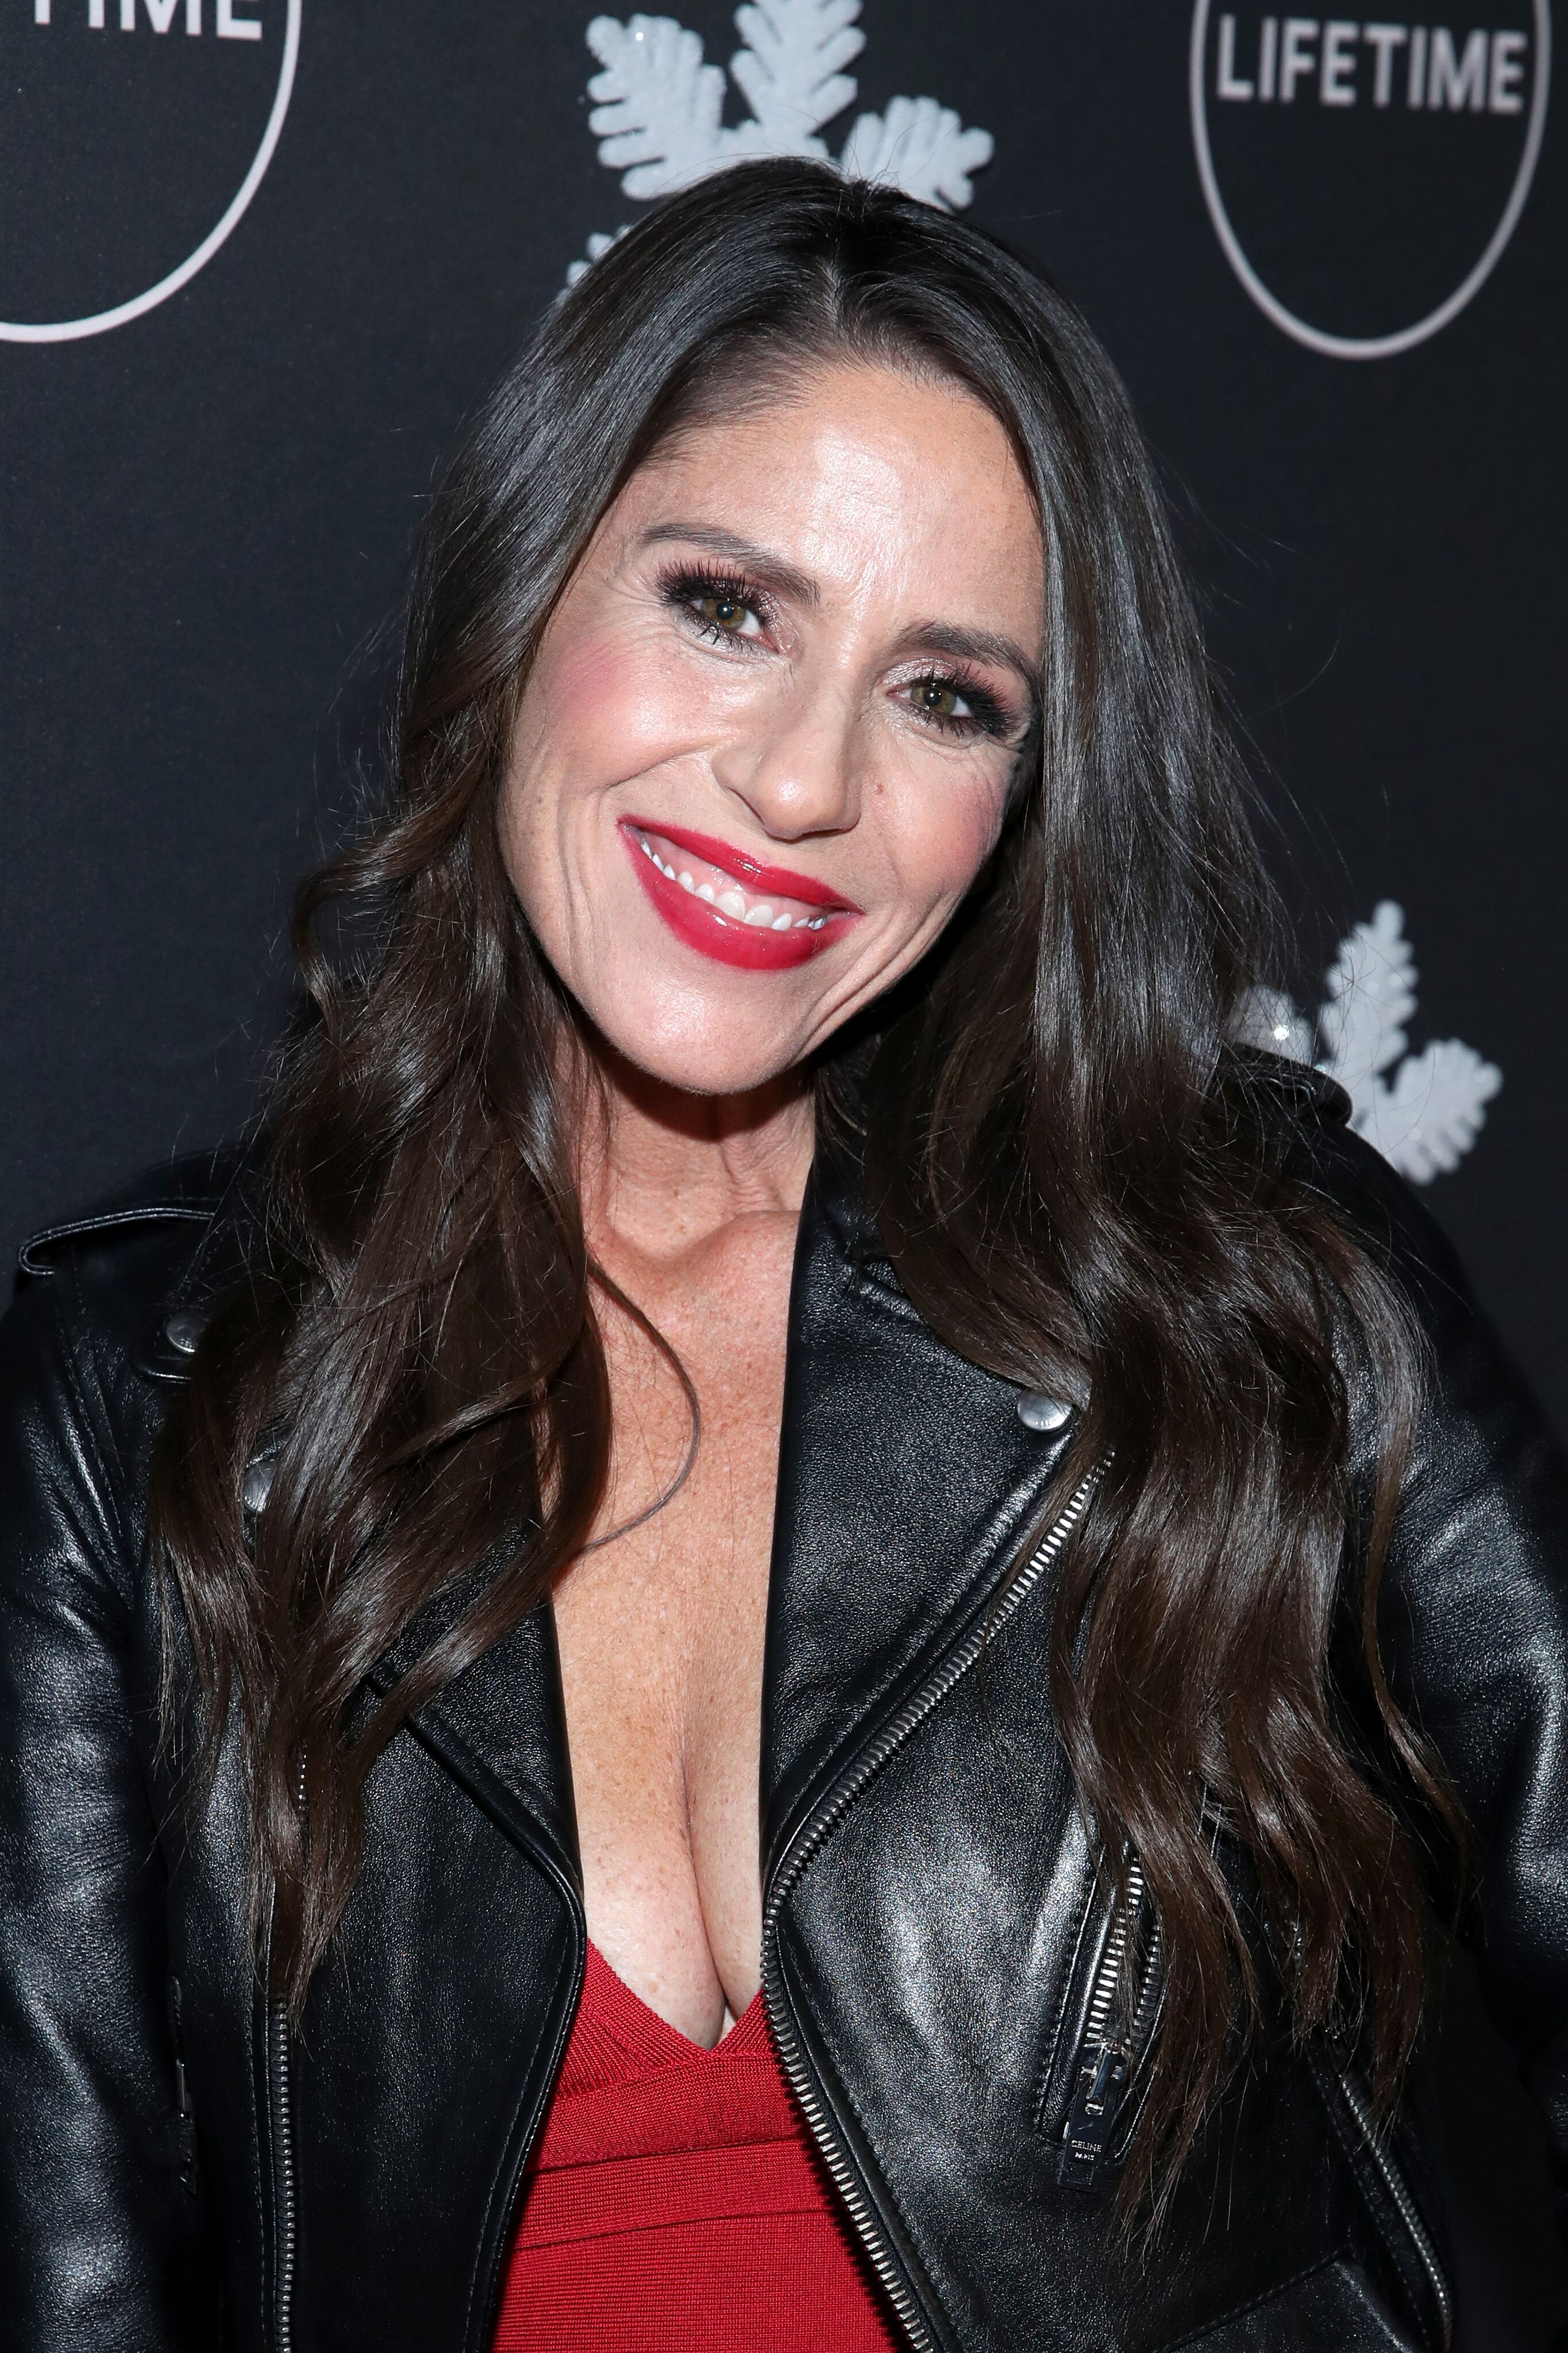 """Soleil Moon Frye attends """"It's a Wonderful Lifetime"""" first holiday party. 